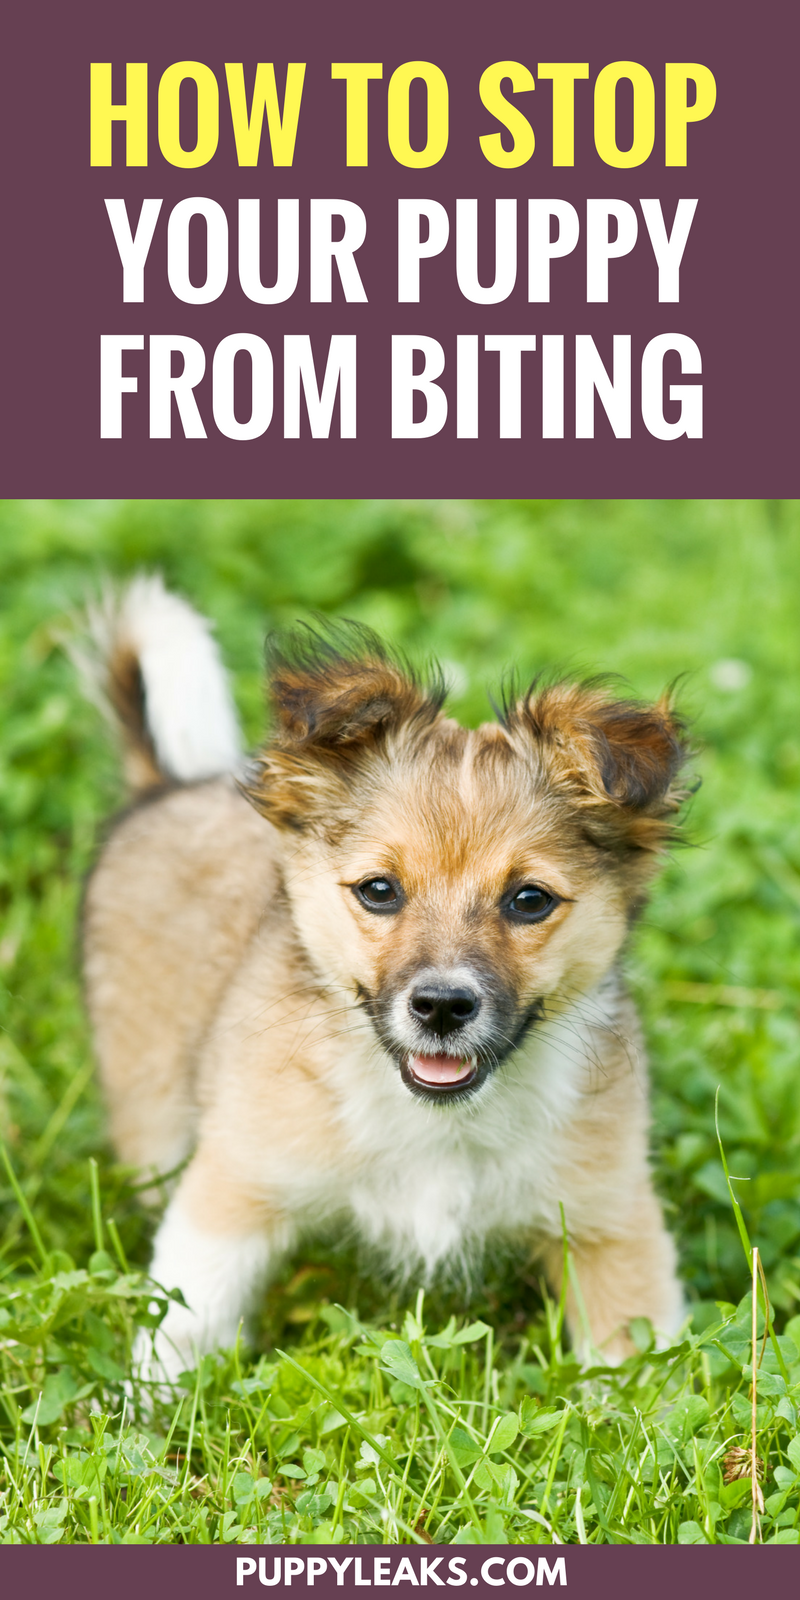 Want to stop your puppy from biting everything? Here's 3 methods that will teach your puppy to stop biting your hands and everything else they come into contact with.